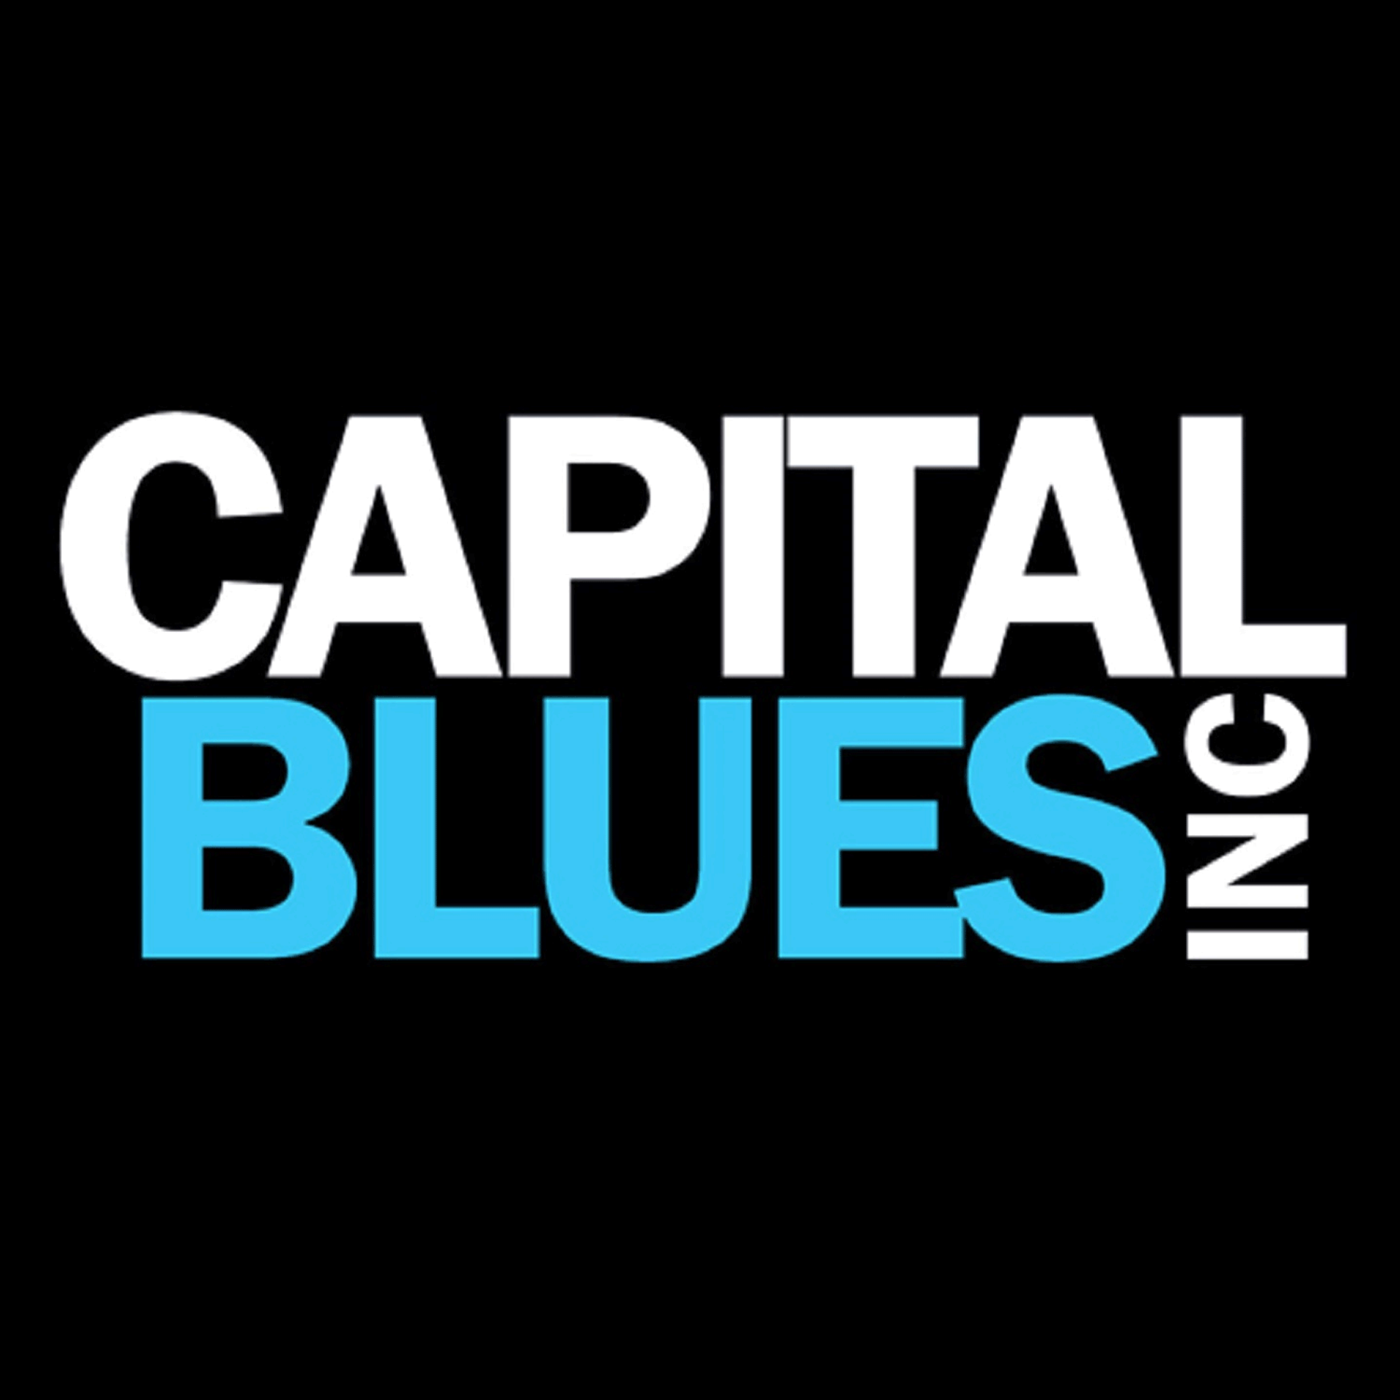 https://cdn.accessradio.org/StationFolder/war/Images/Capital_Blues.png